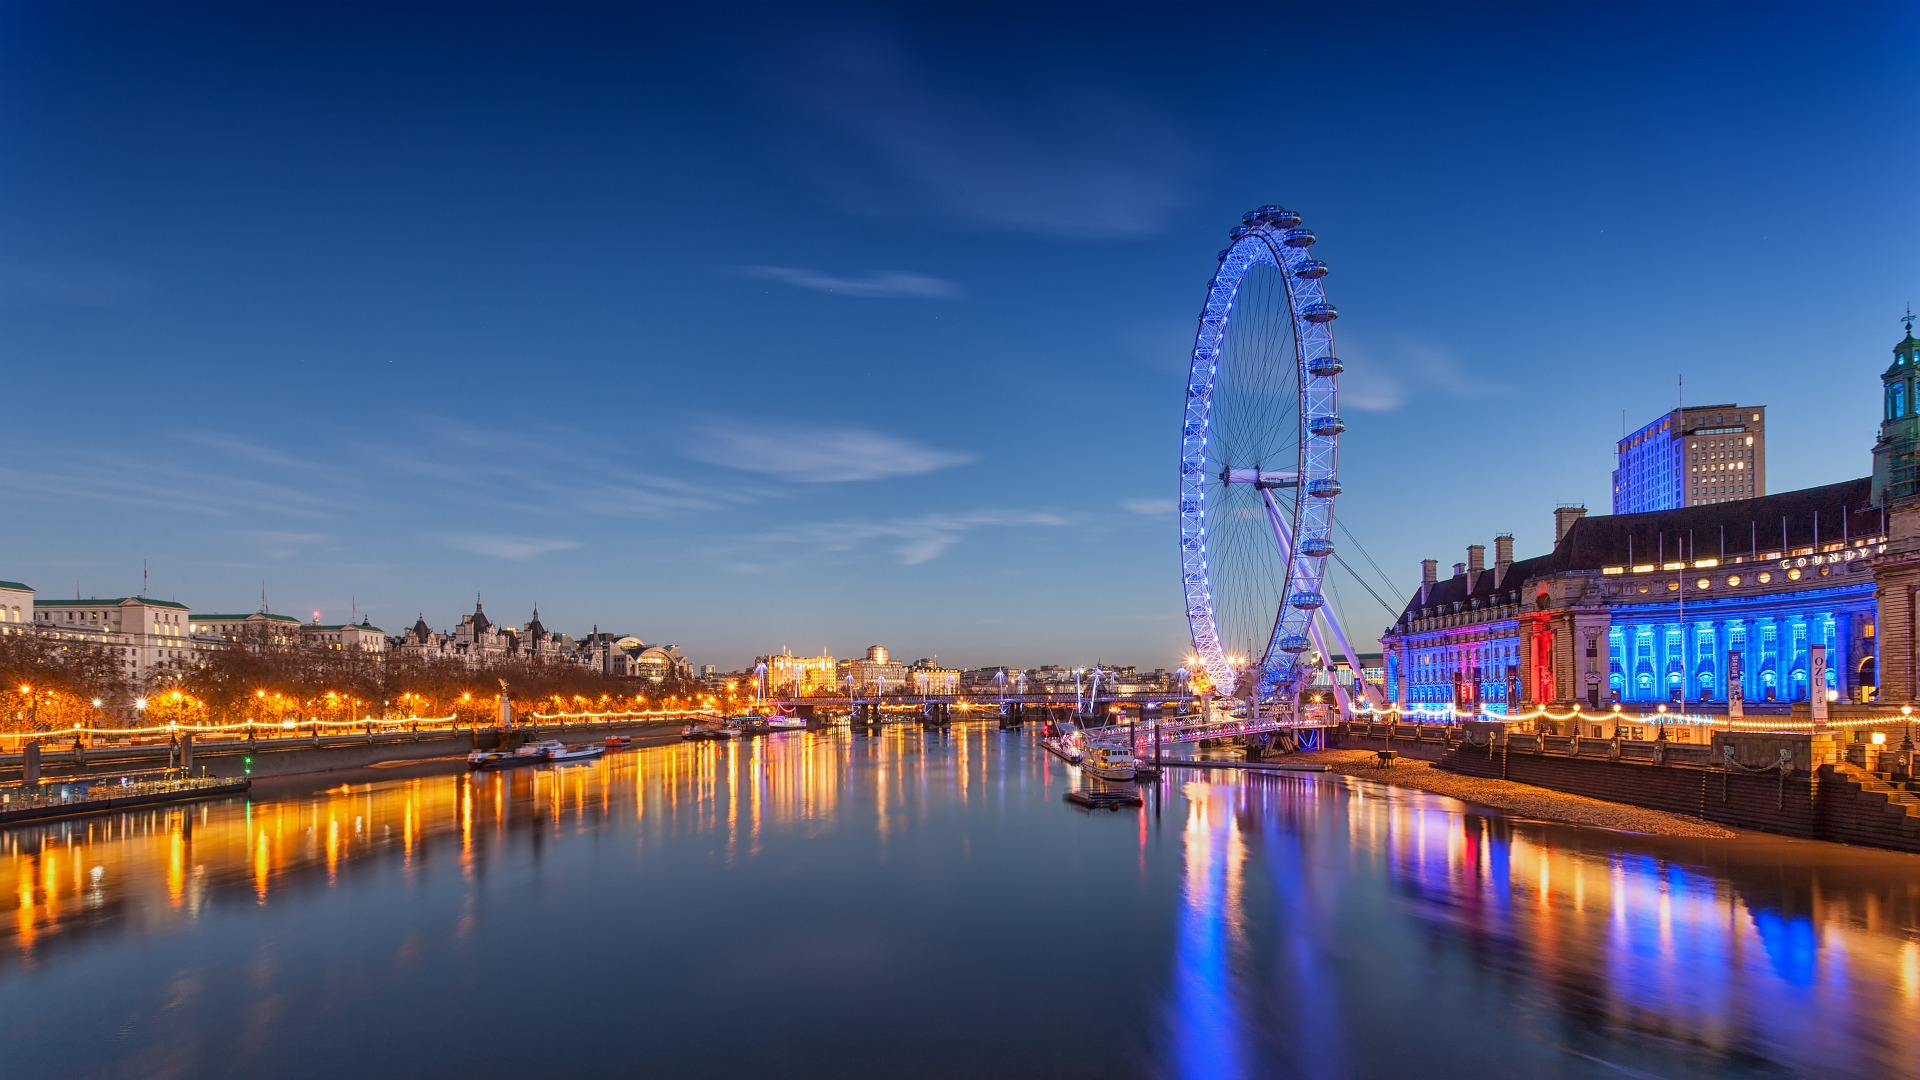 the London Eye. Flight deals to Europe.